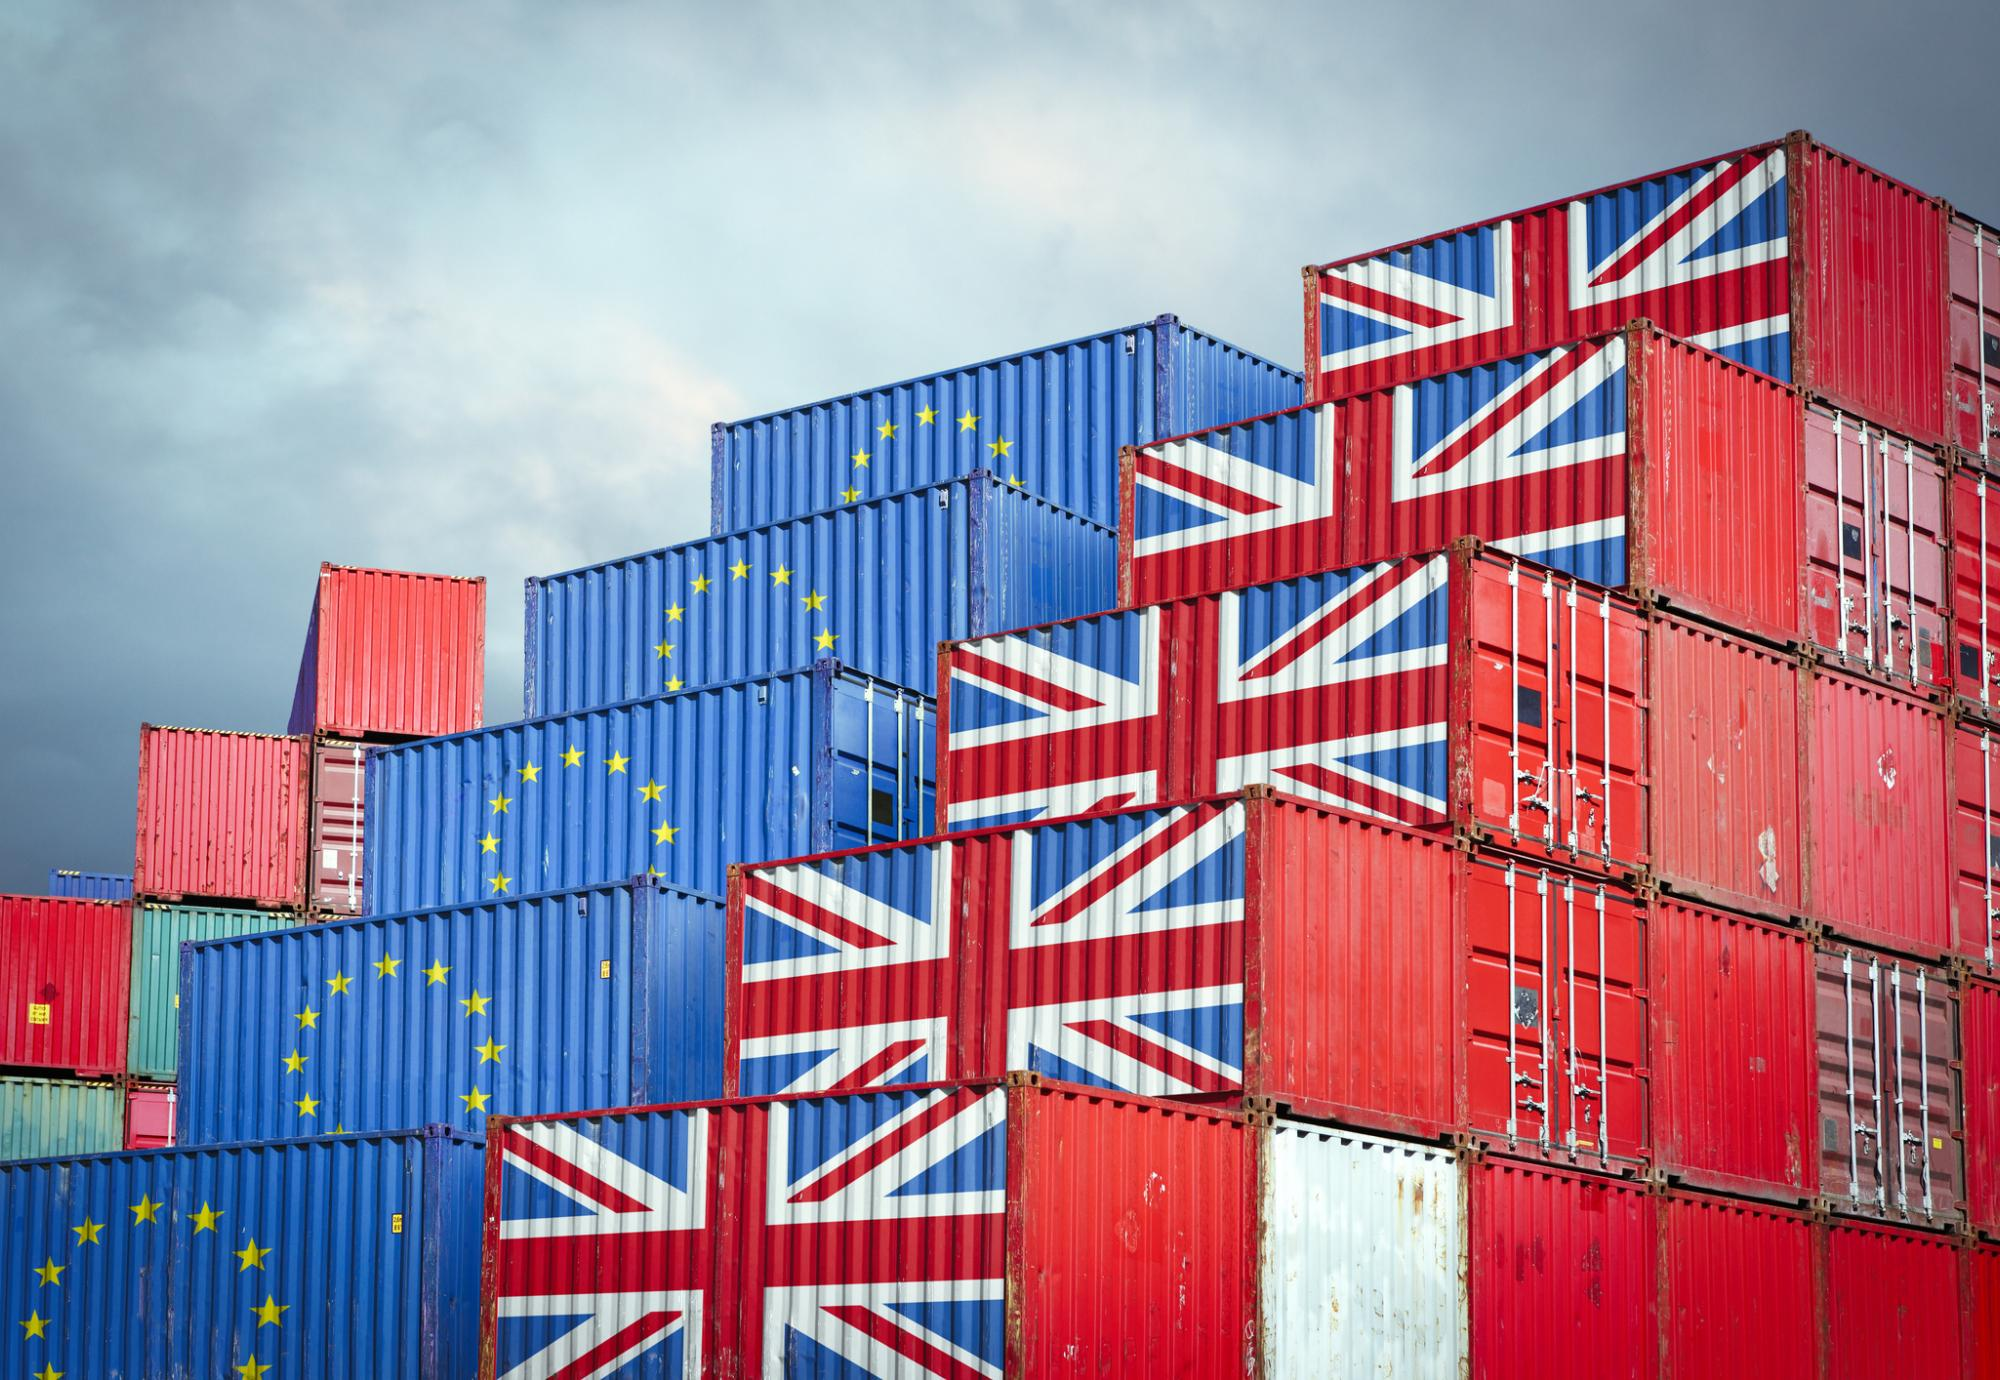 Storage containers representing EU and UK imports and exports.